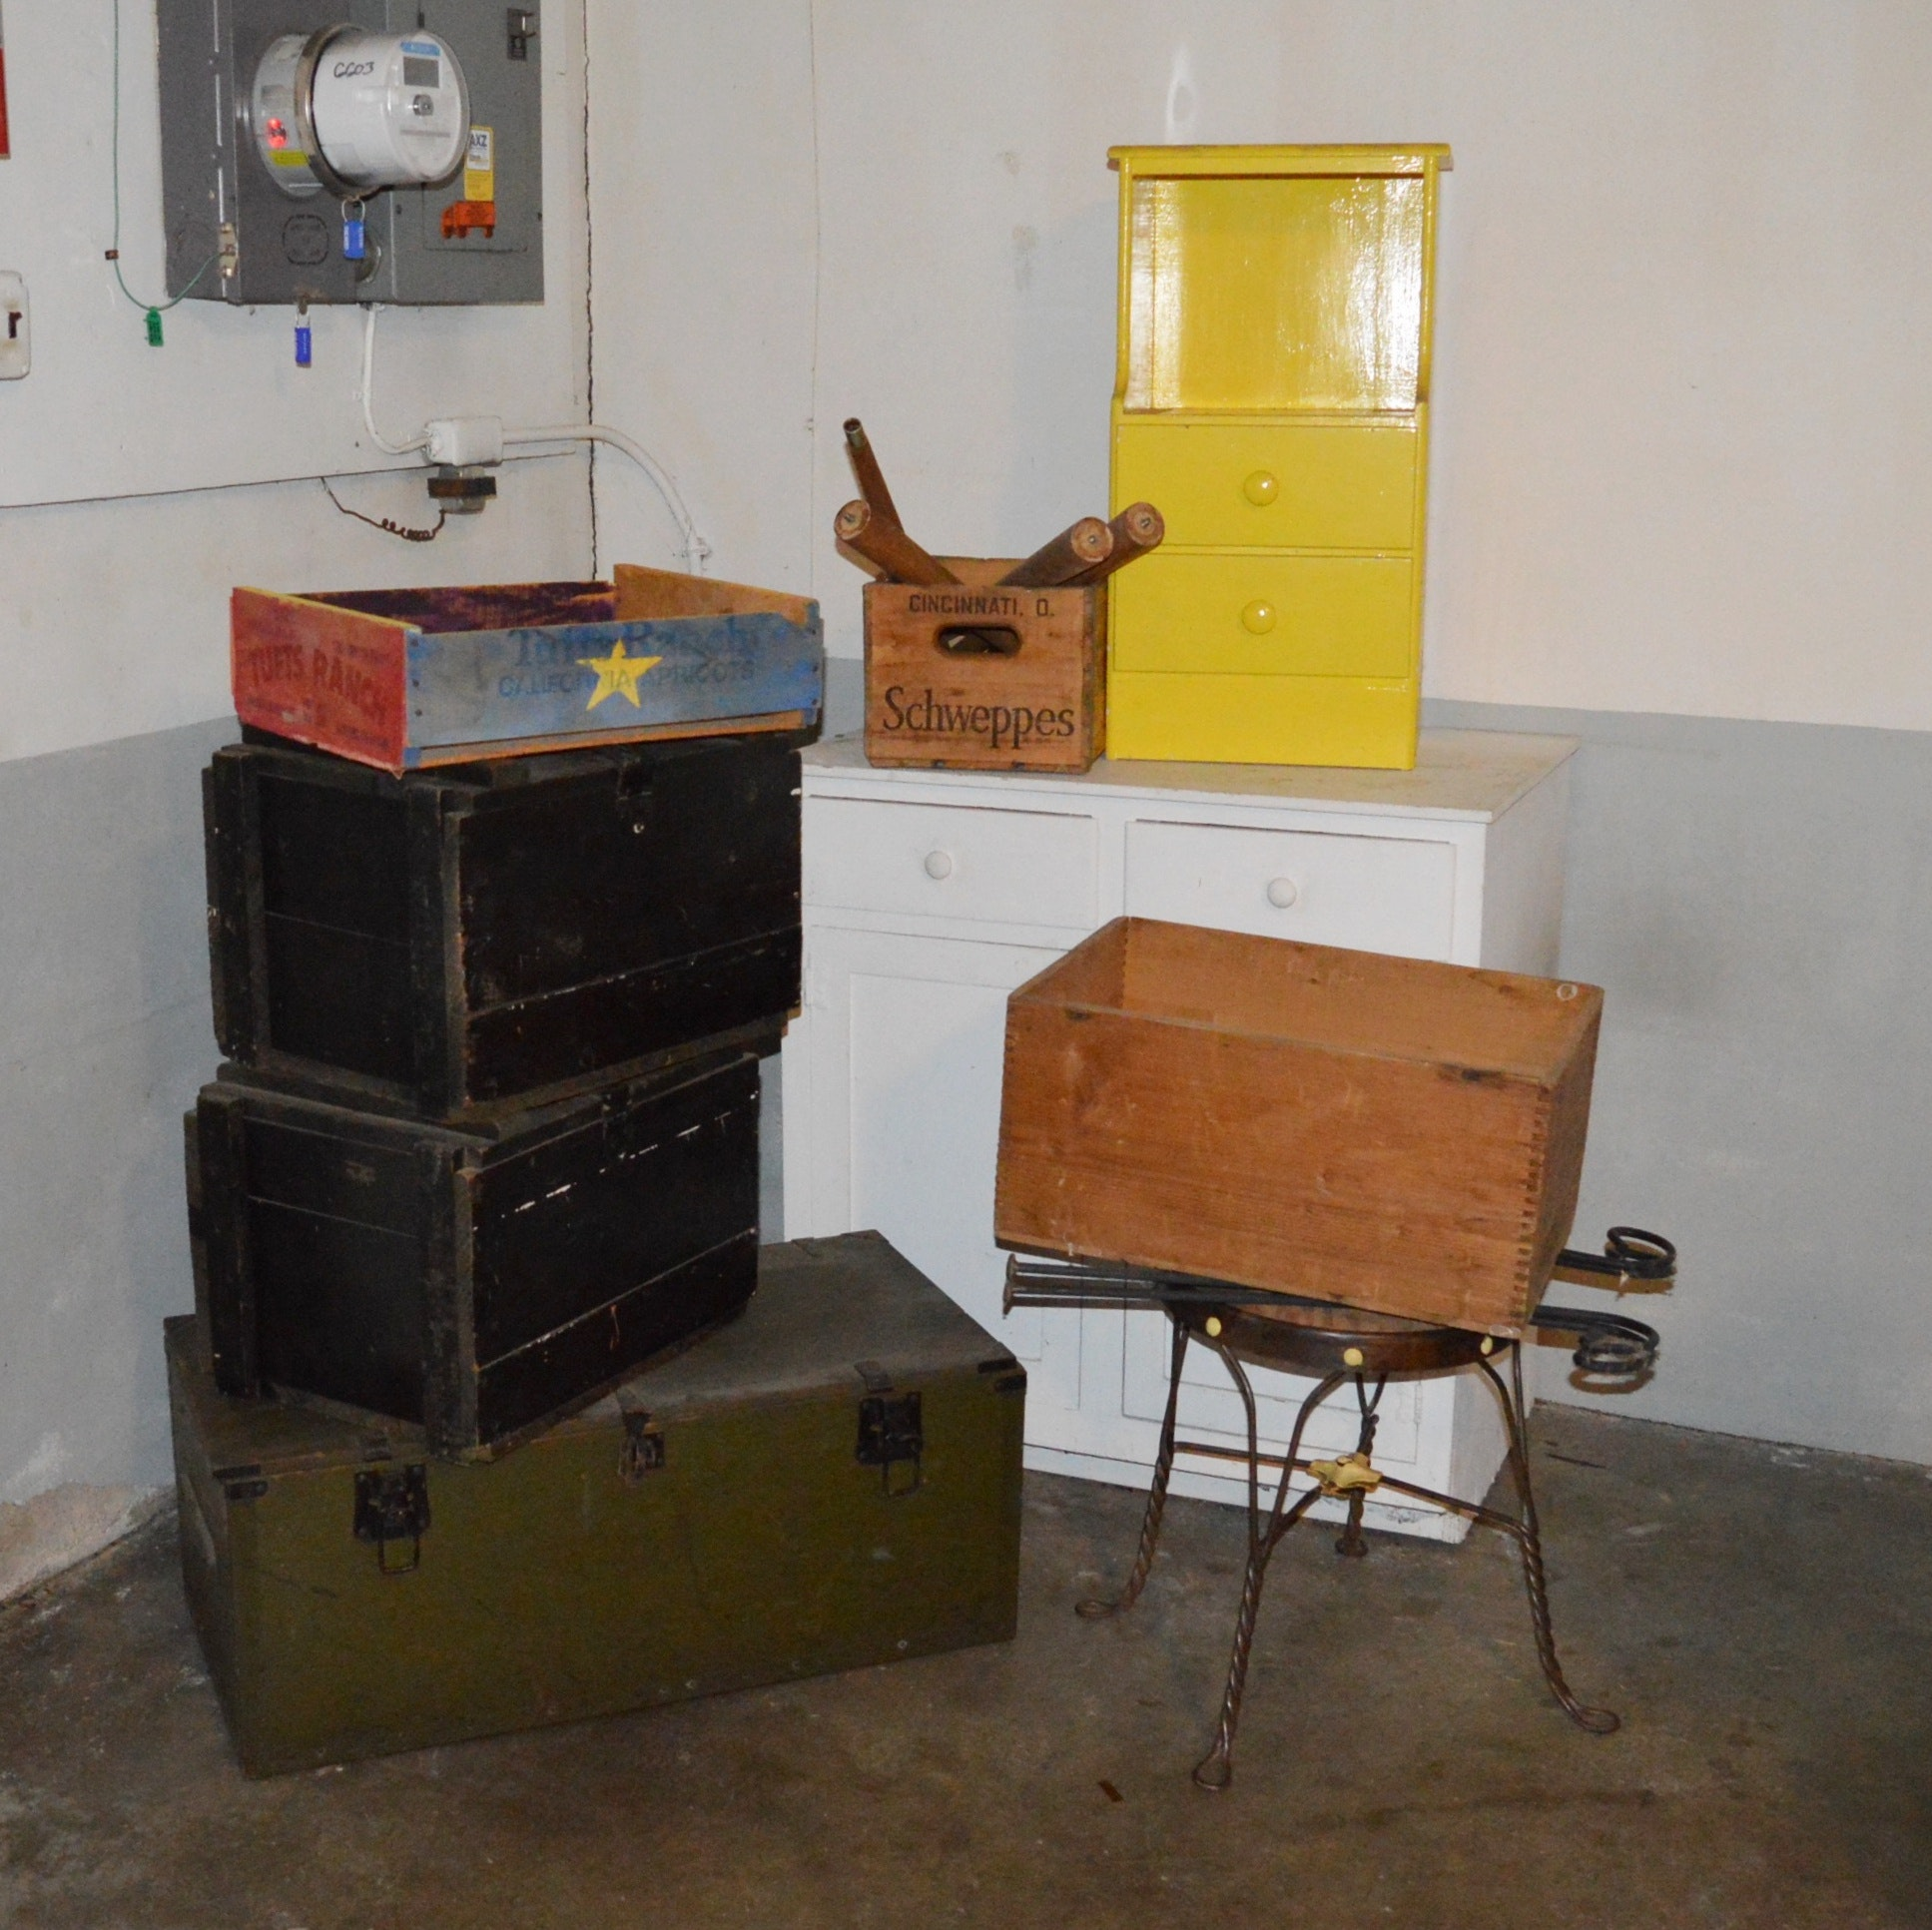 Wooden Military Boxes, Crates and Cabinets